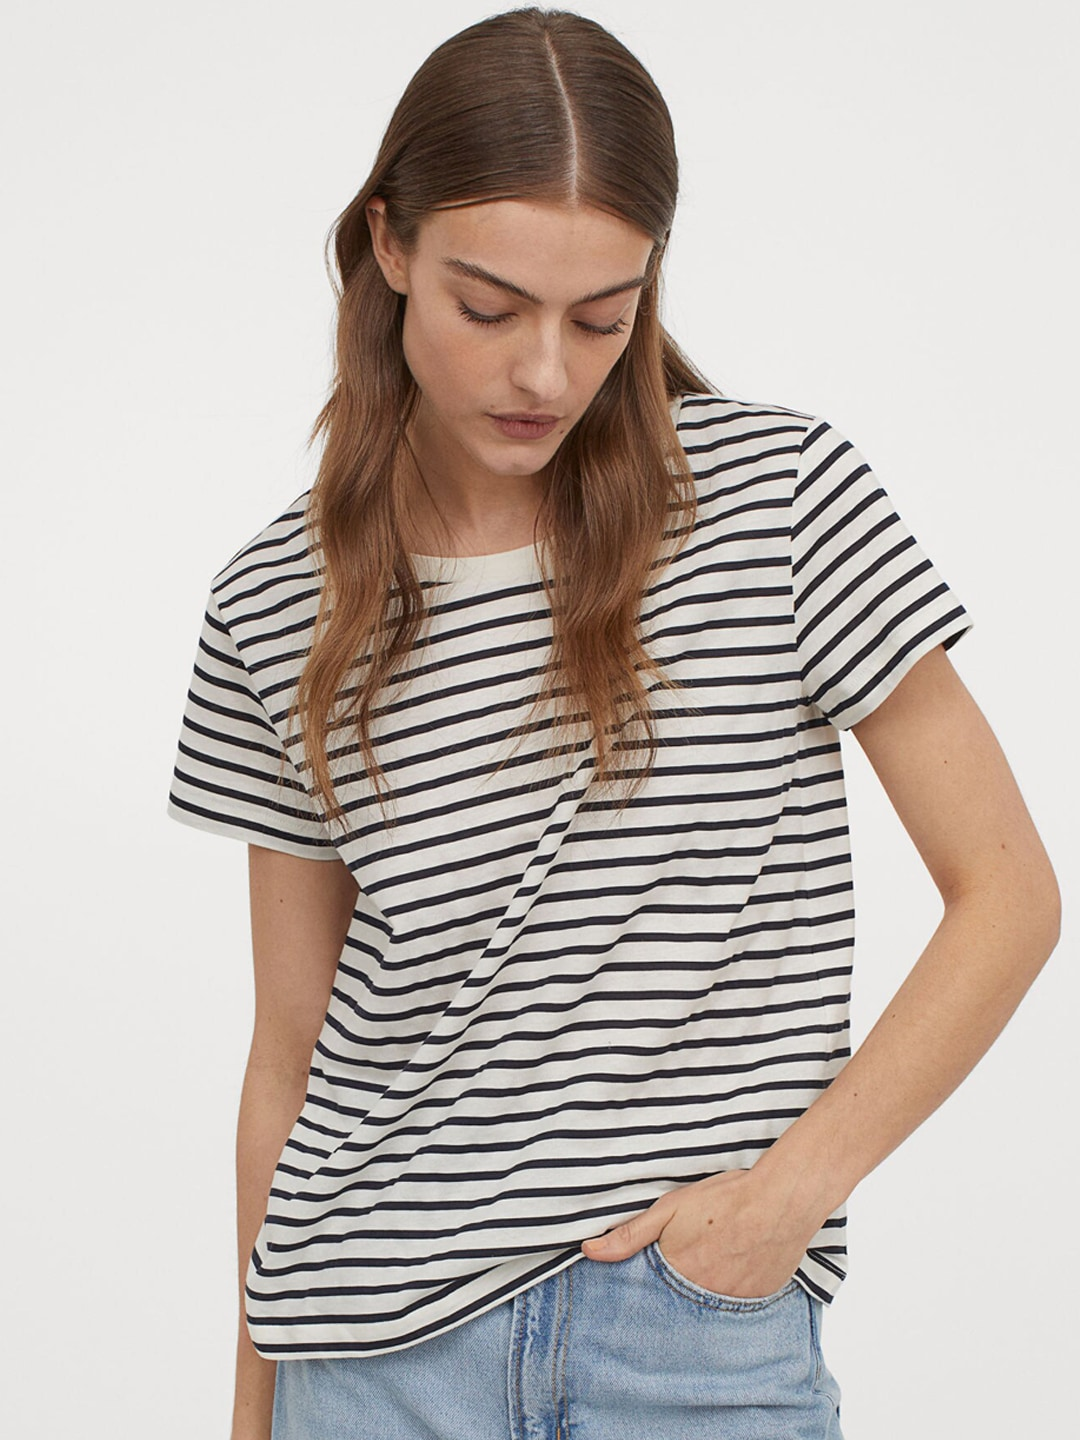 H&M Women White & Blue Striped Cotton T-shirt